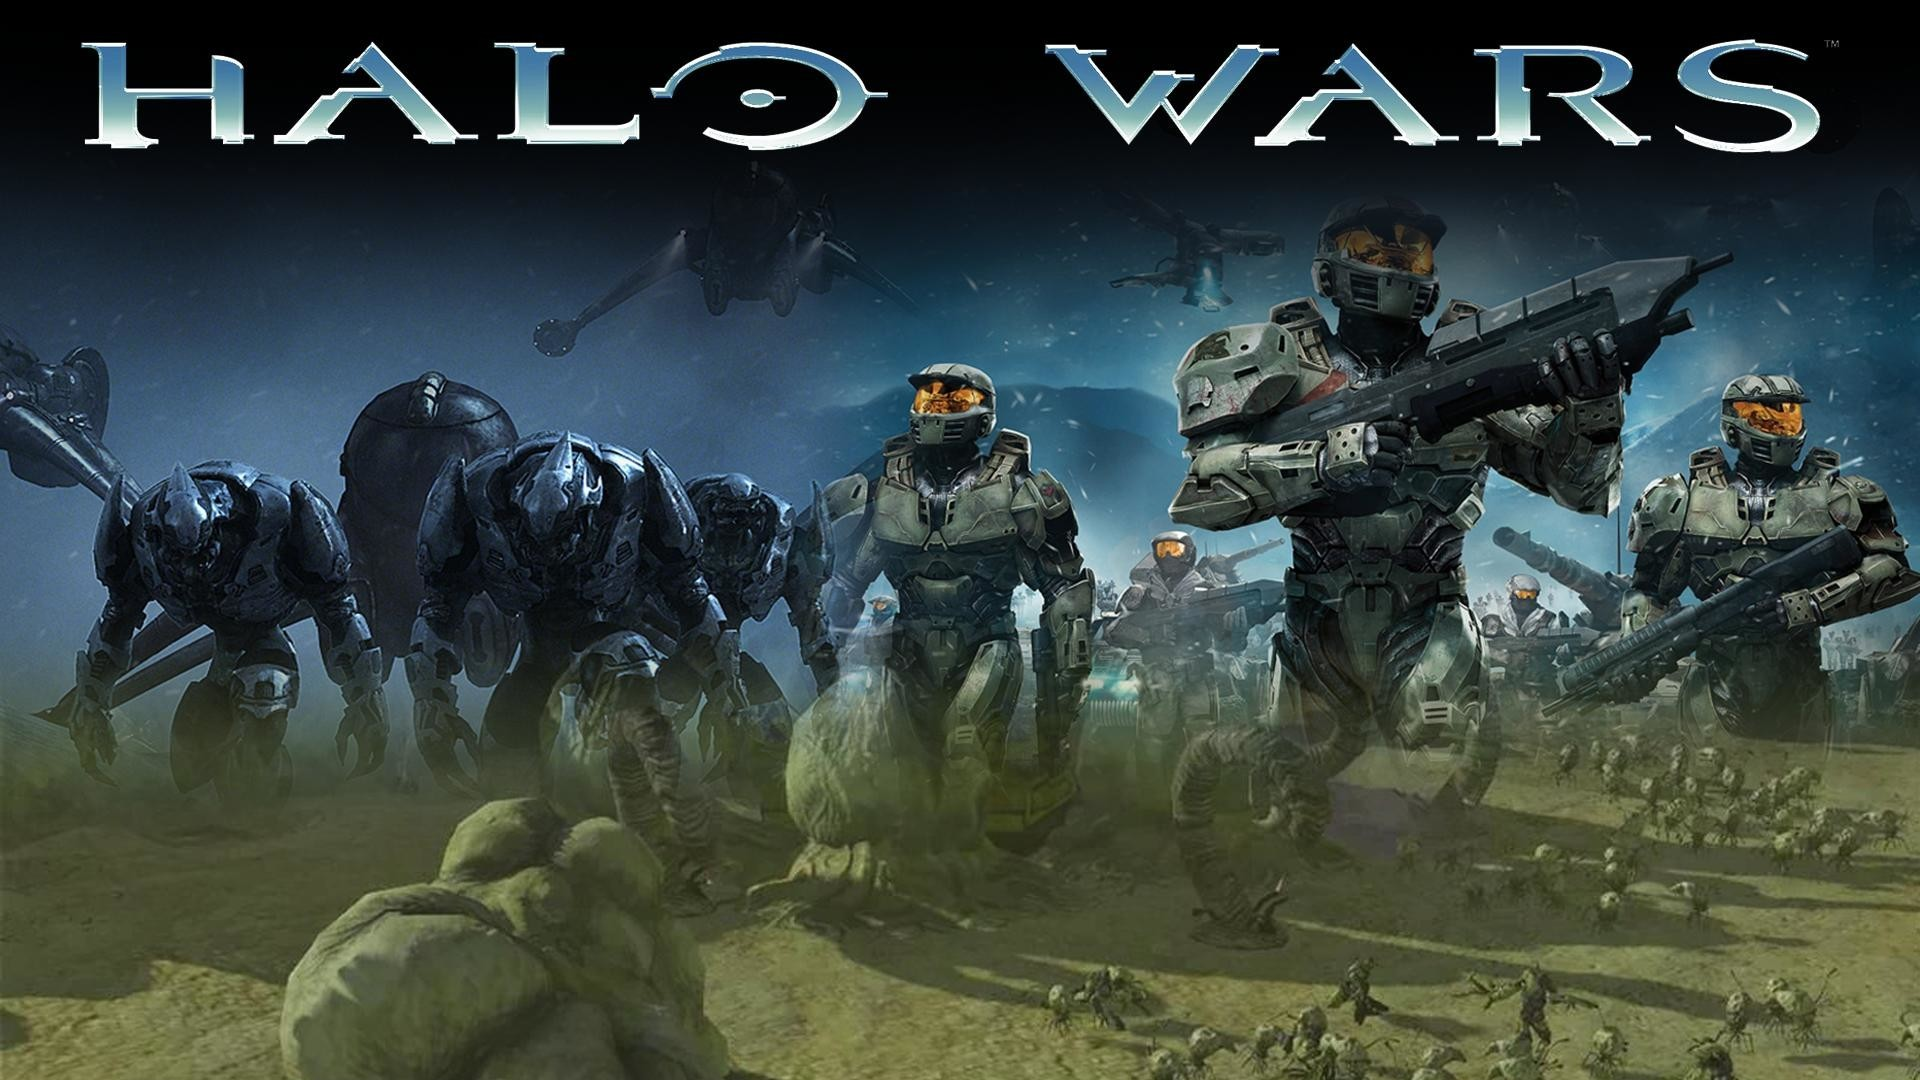 Halo 3 wallpapers hd 75 background pictures - Wallpaper halo wars ...